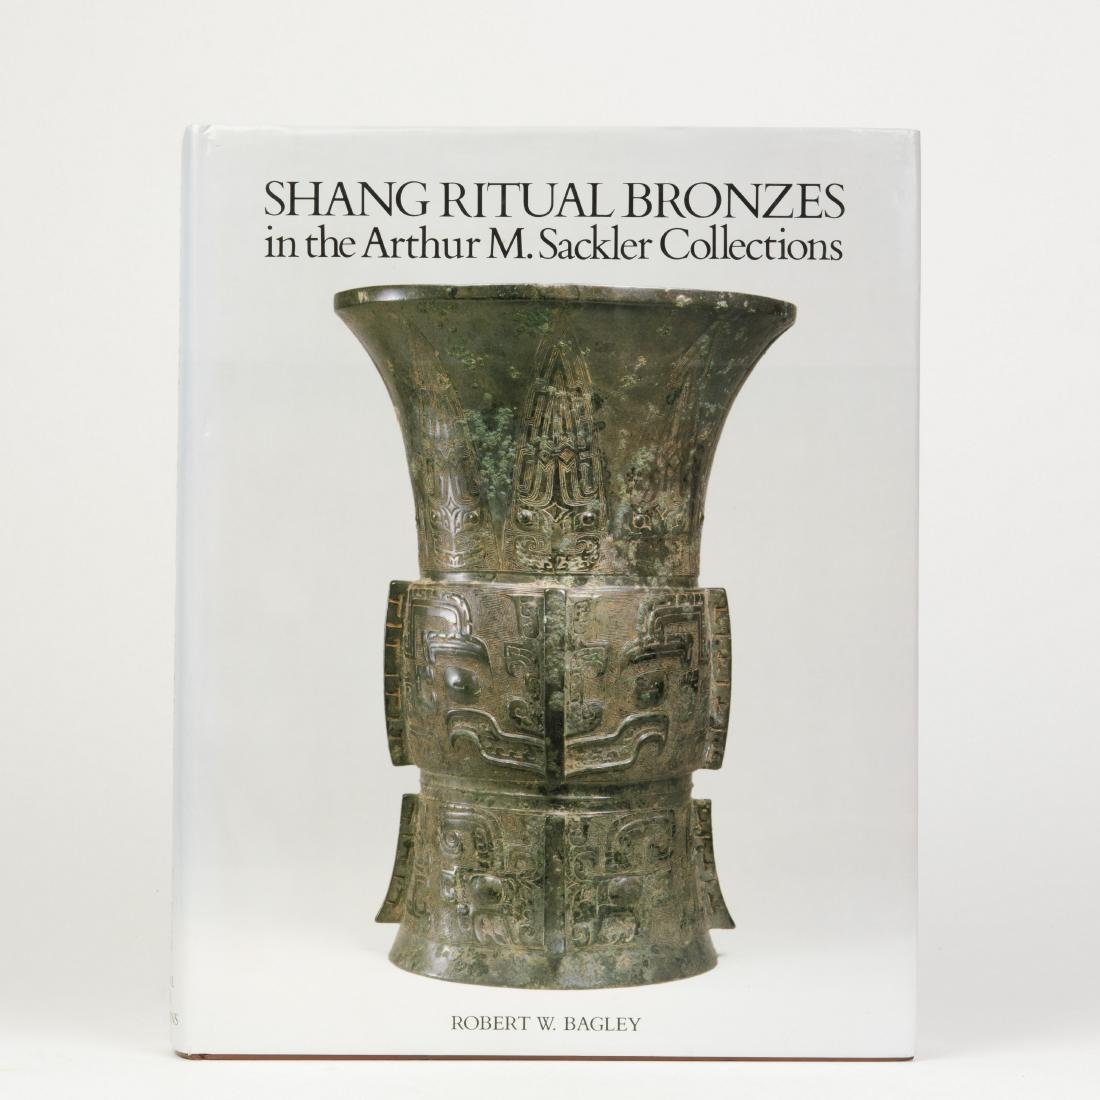 A BOOK OF SHANG RITUAL BRONZES IN THE ARTHUR M. SACKLER